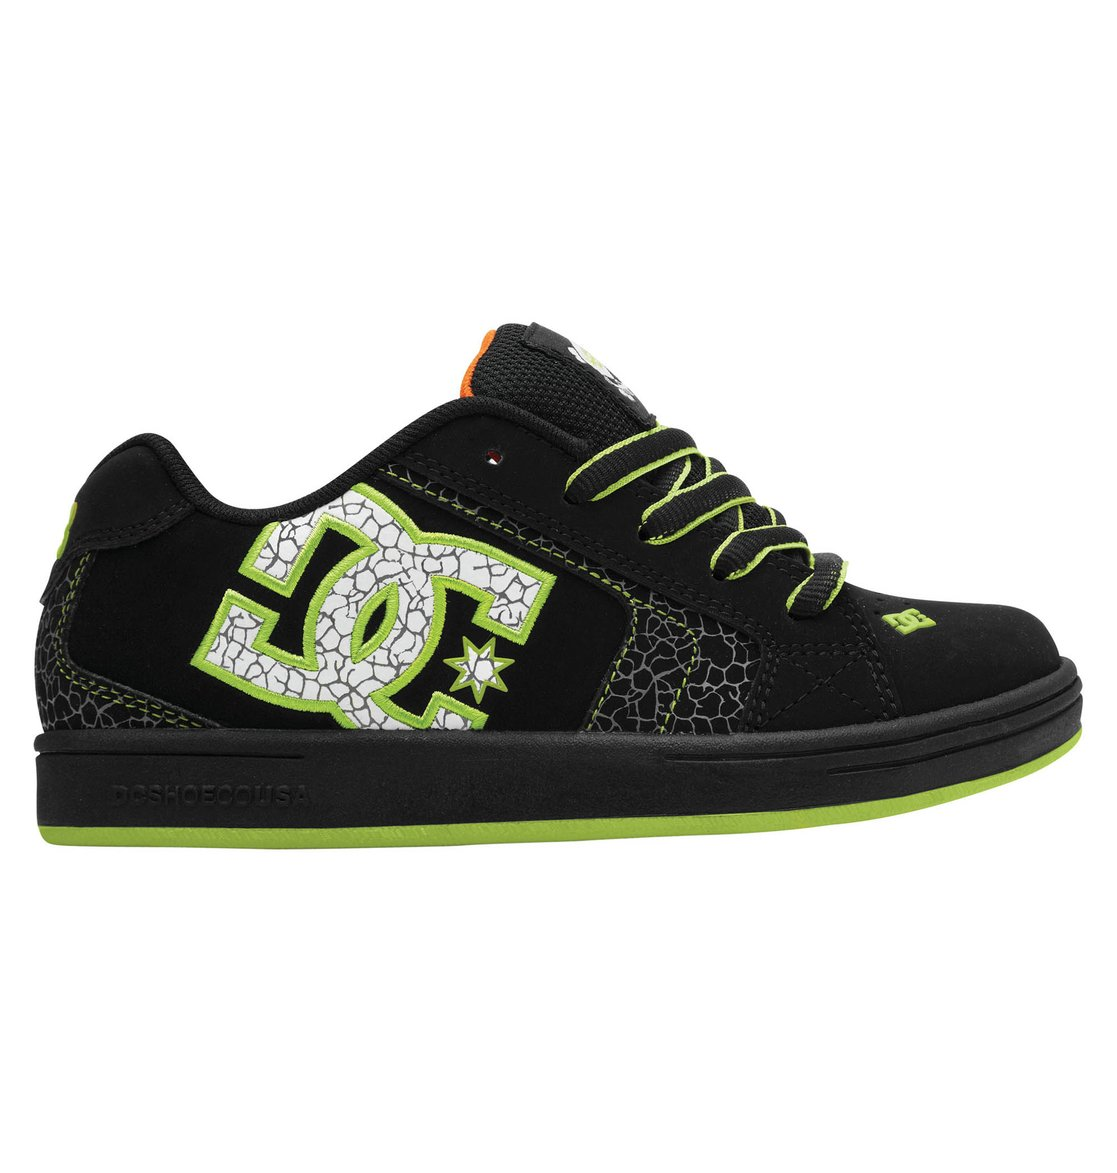 boys ken block net shoes 320301b dc shoes. Black Bedroom Furniture Sets. Home Design Ideas